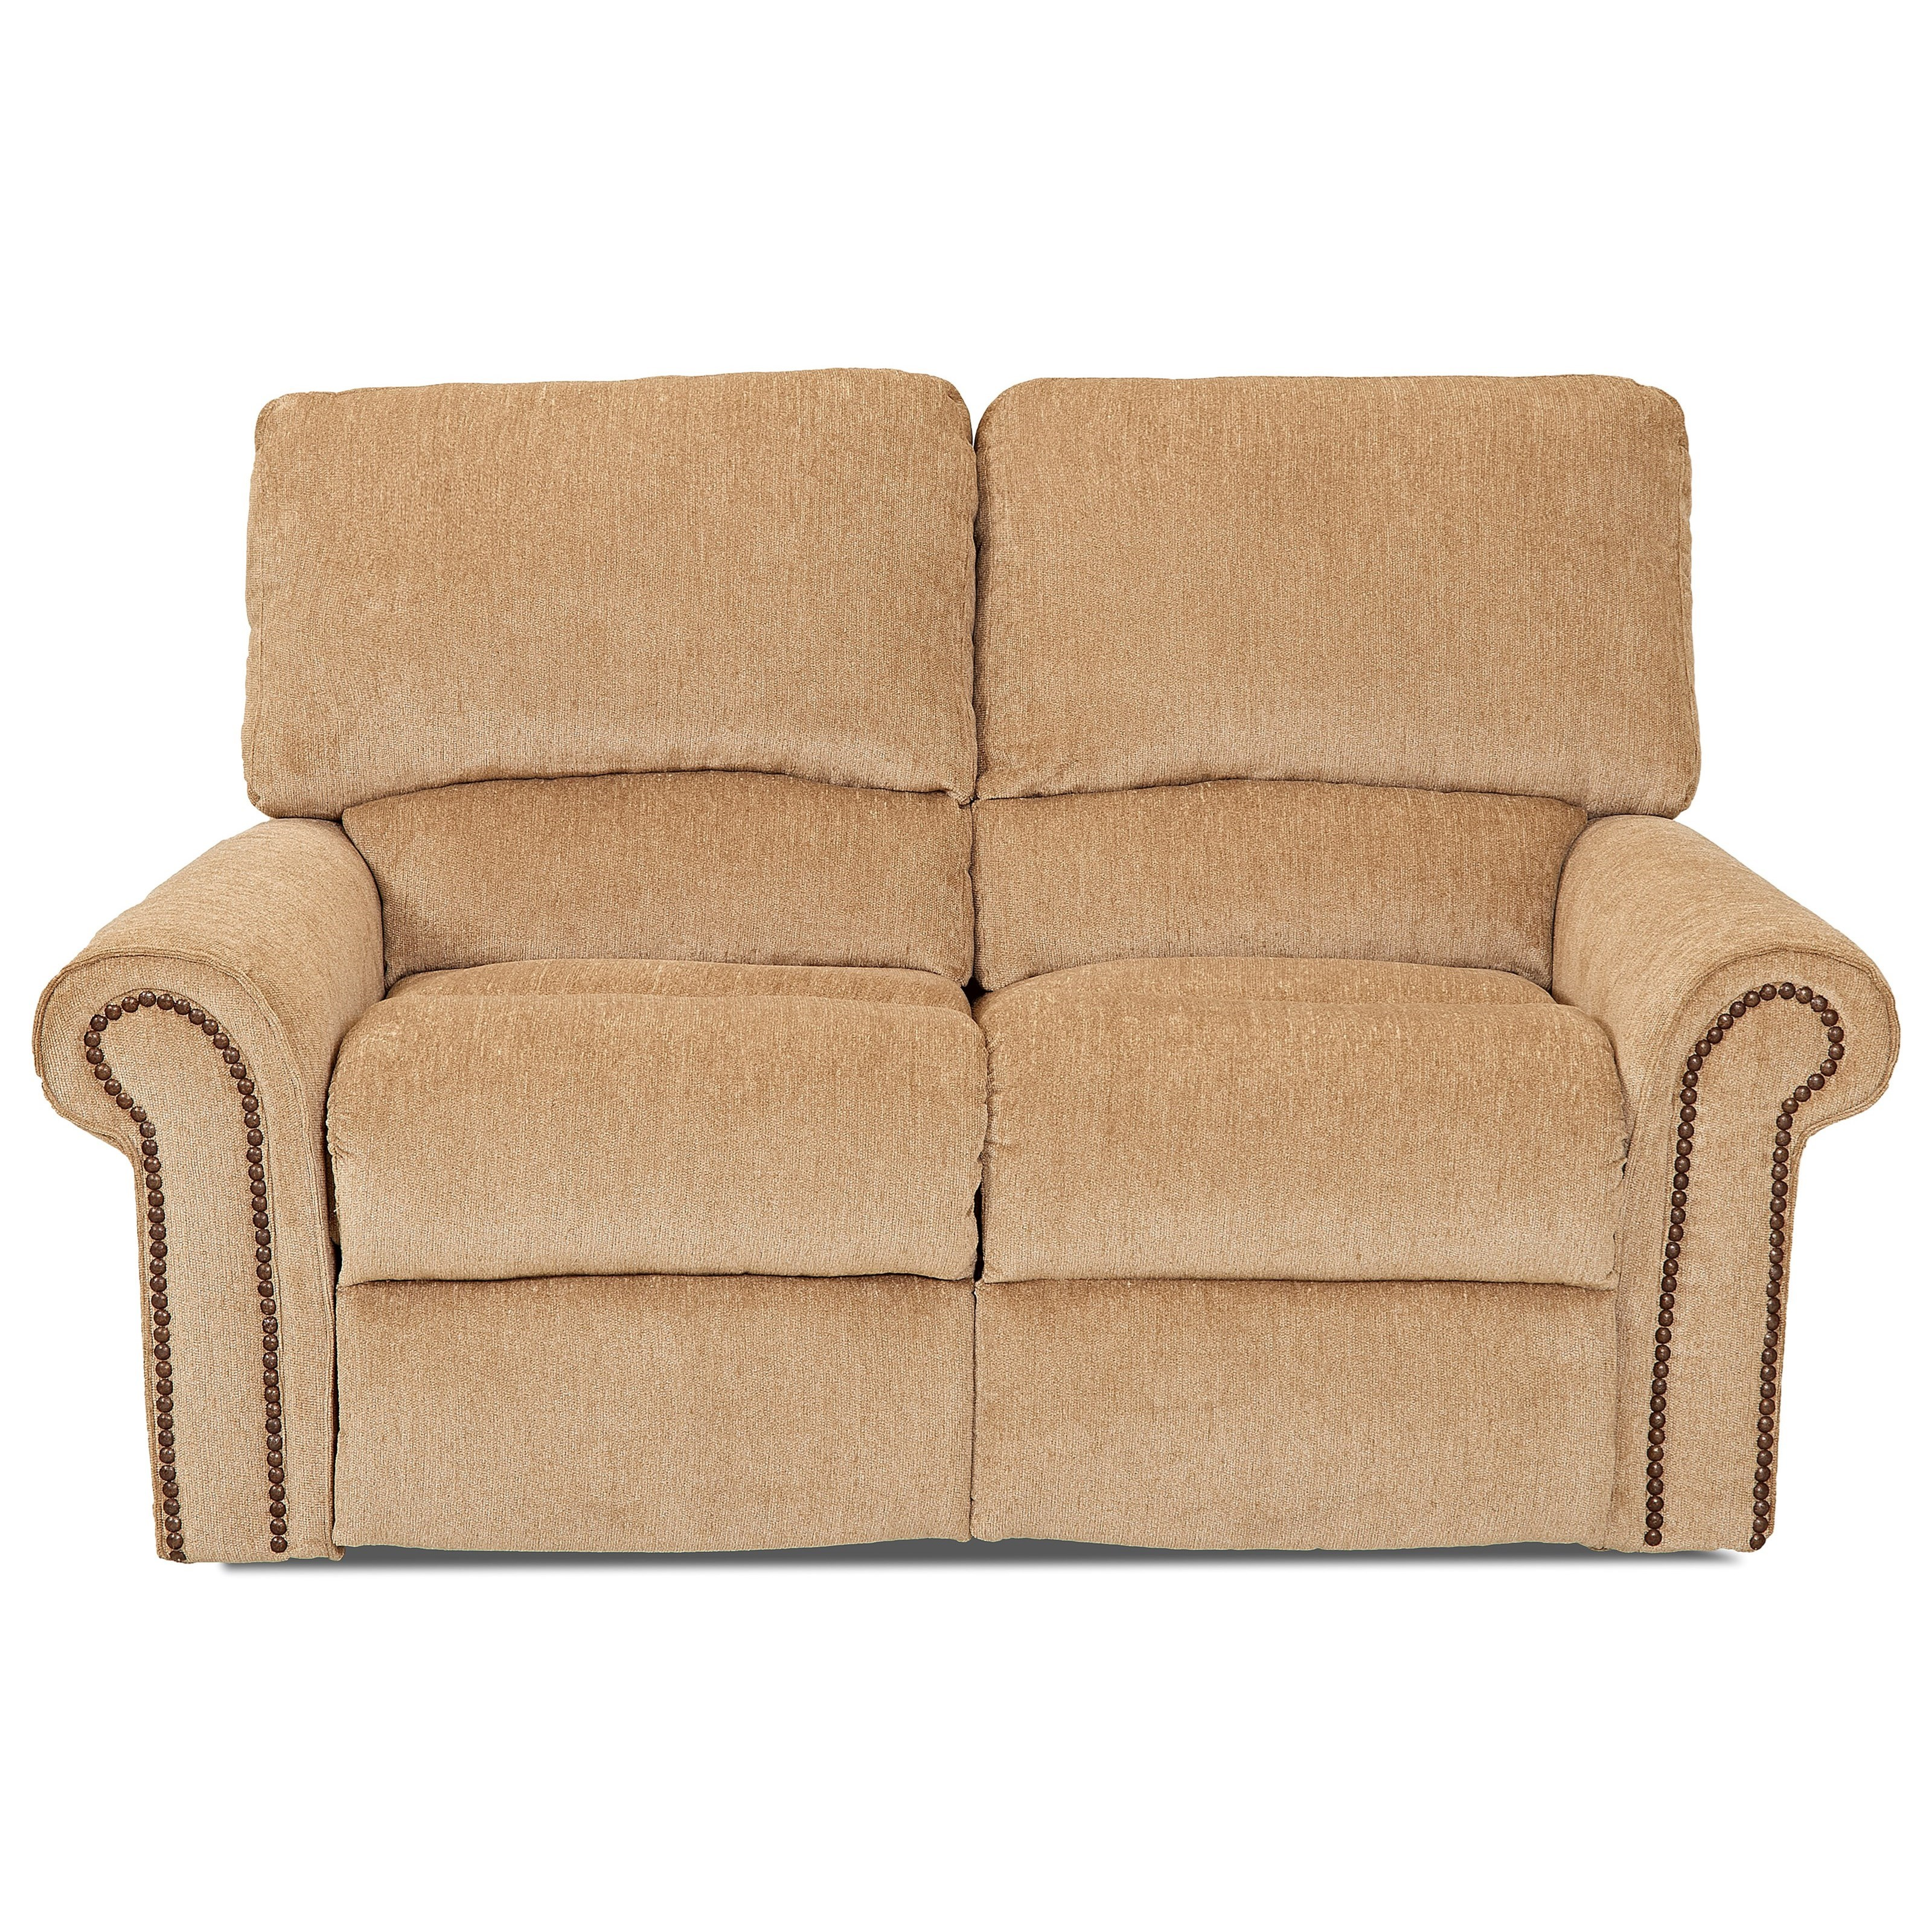 Power Reclining Loveseat With Rolled Arms And Nailheads By Klaussner